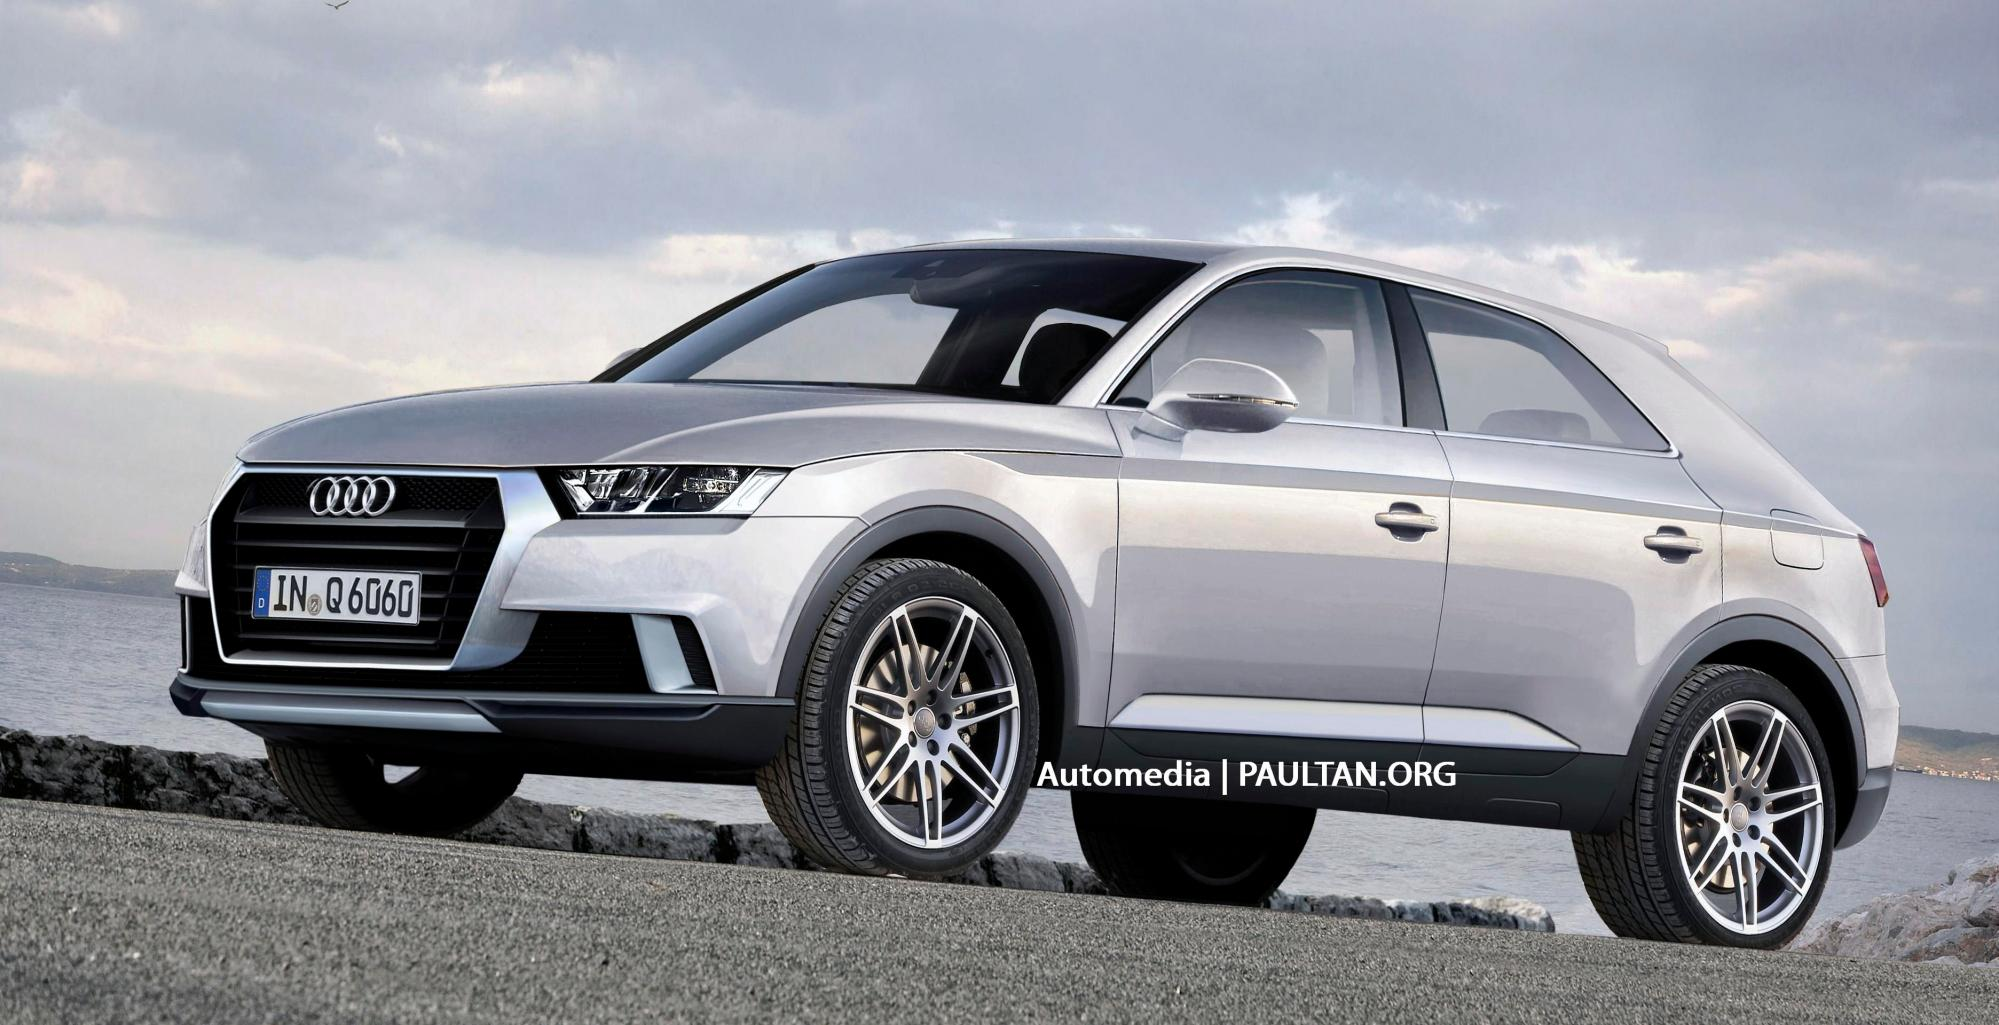 hight resolution of audi q6 could surface in 2016 to rival bmw x6 image 173265